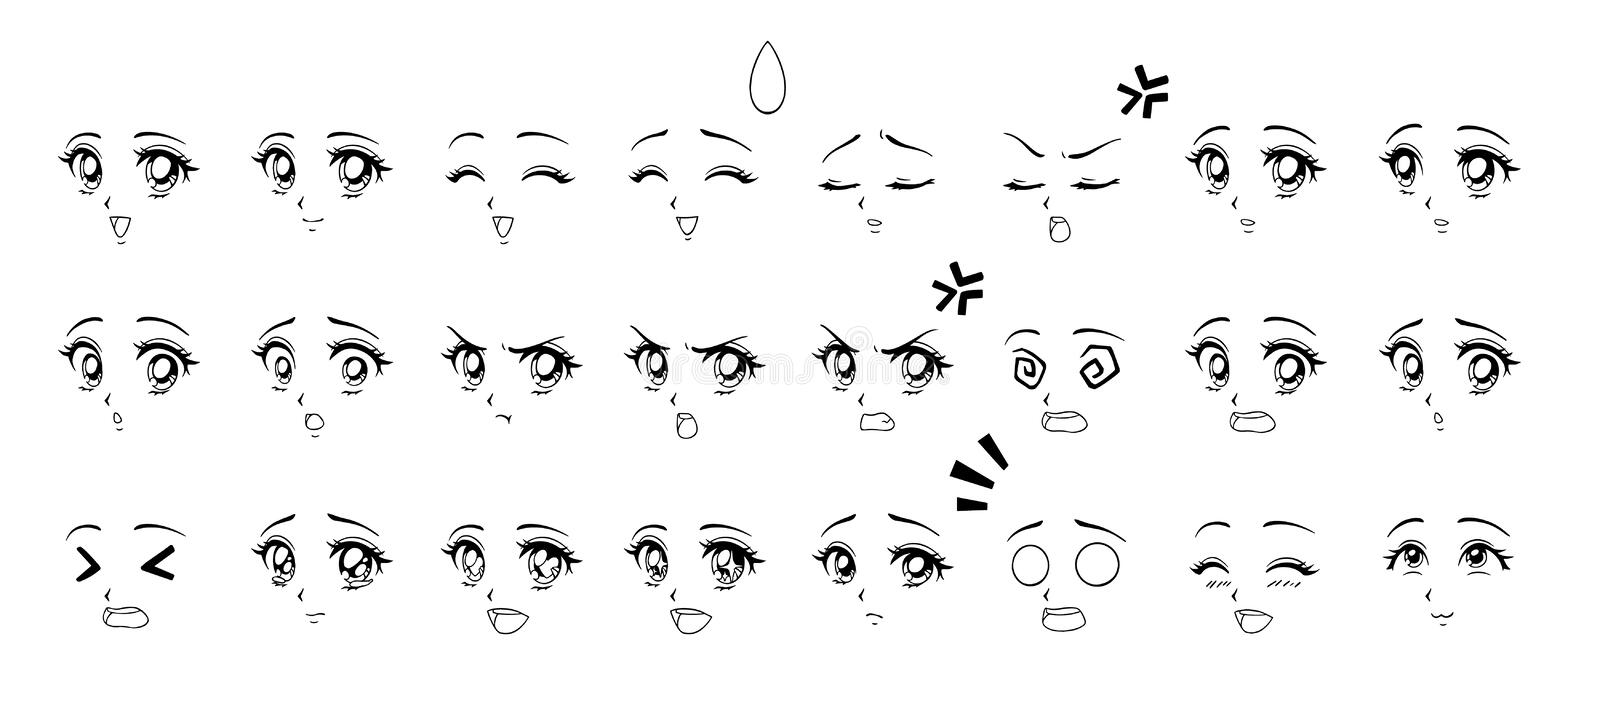 Set of cartoon anime style expressions. Different eyes, mouth, eyebrows. Contour picture for manga. Hand drawn vector illustration isolated on white background royalty free illustration